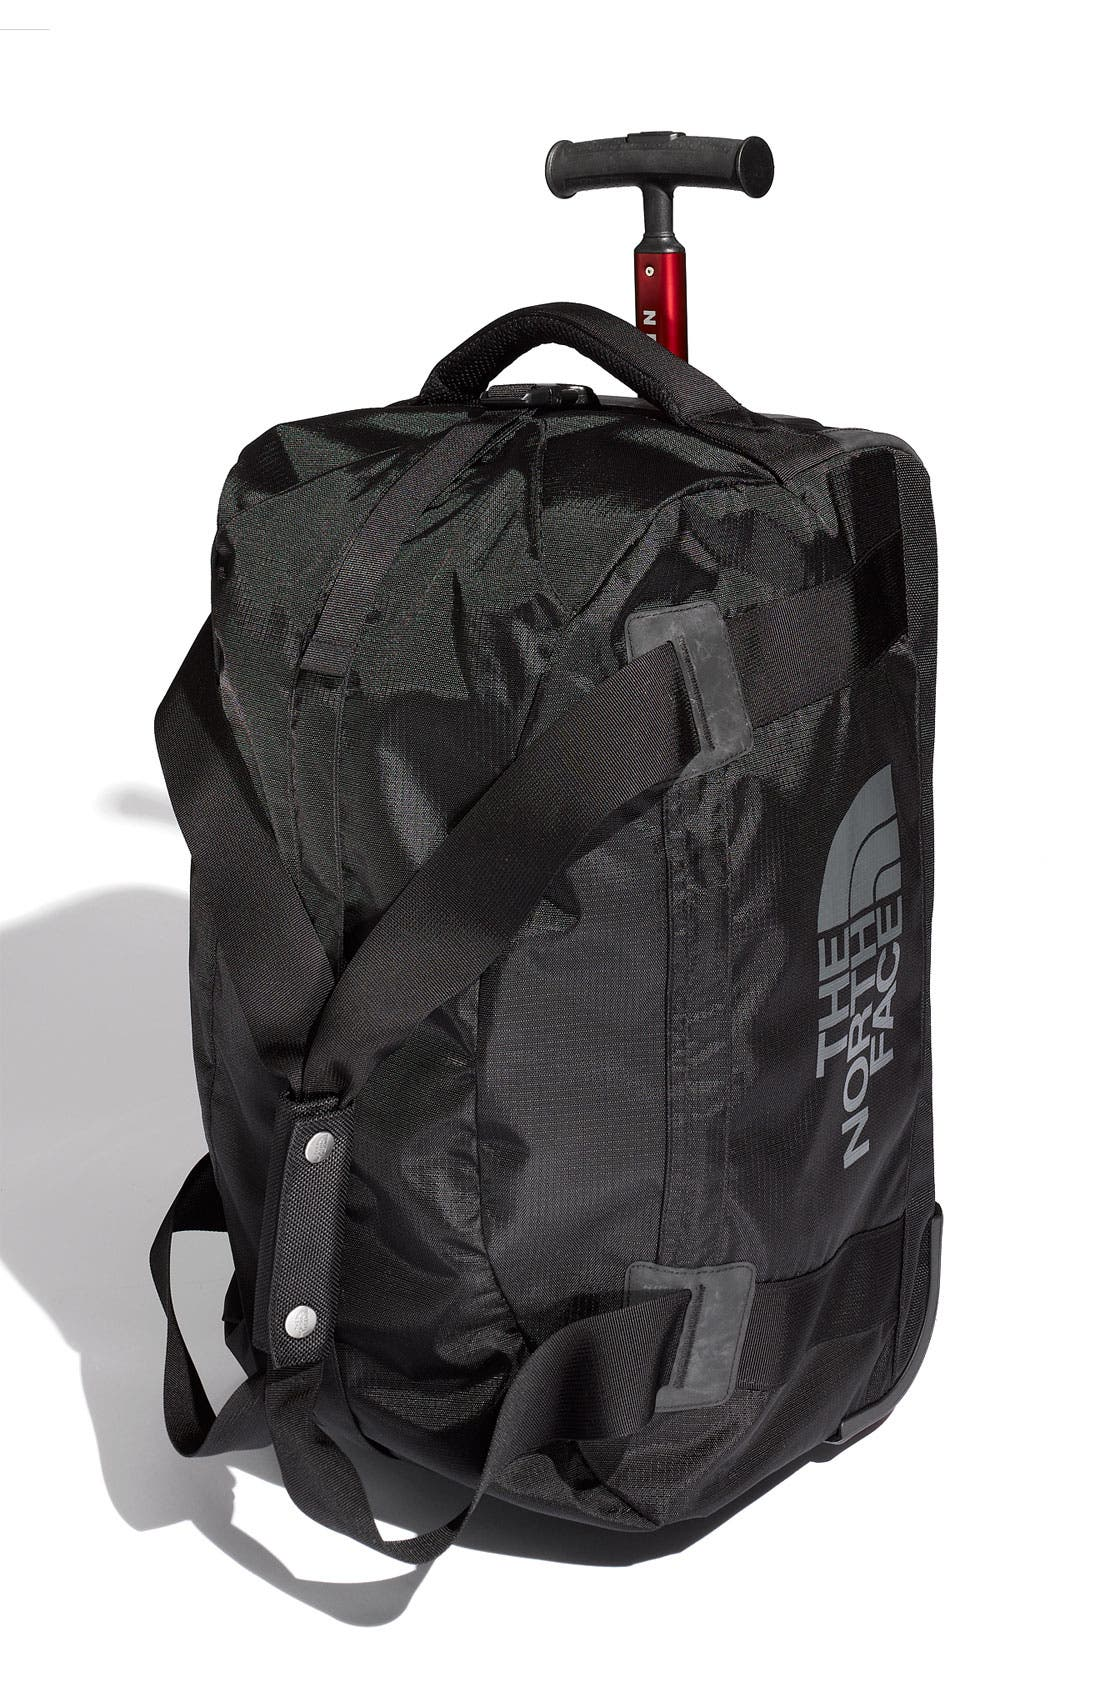 Alternate Image 2  - The North Face 'Wayfinder' Carry-On Wheeled Duffel Bag